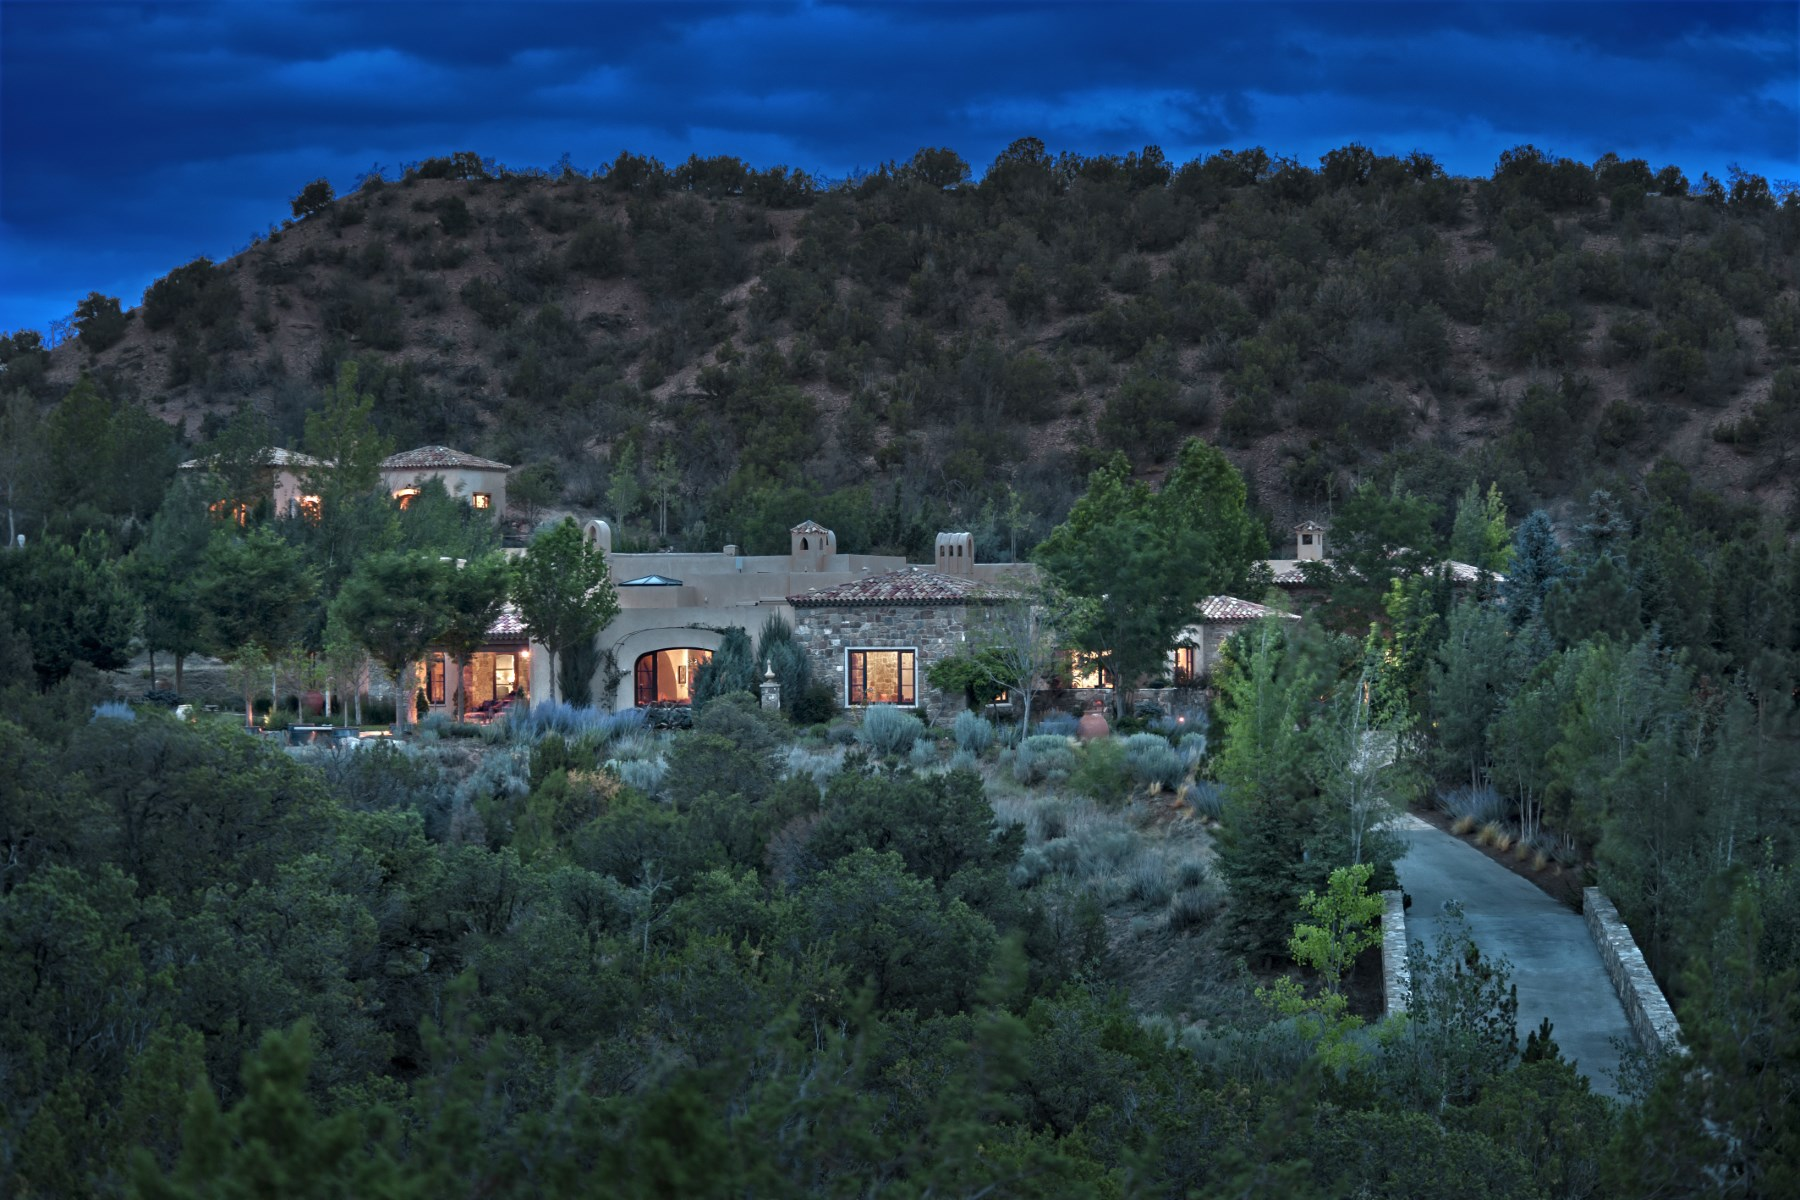 Single Family Home for Sale at Tesuque Ridge Santa Fe, New Mexico, 87506 United States